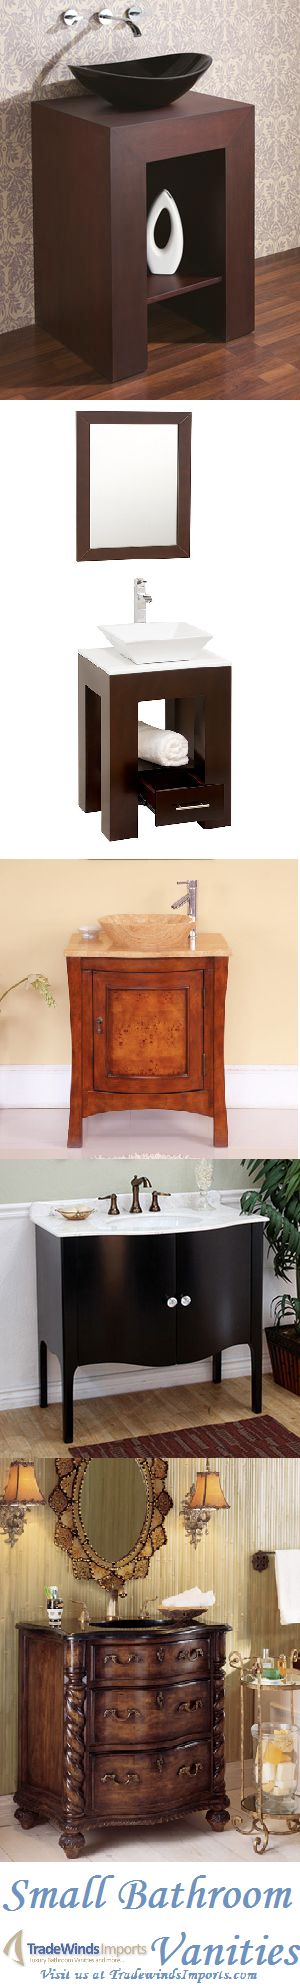 A collection of small bathroom vanities from